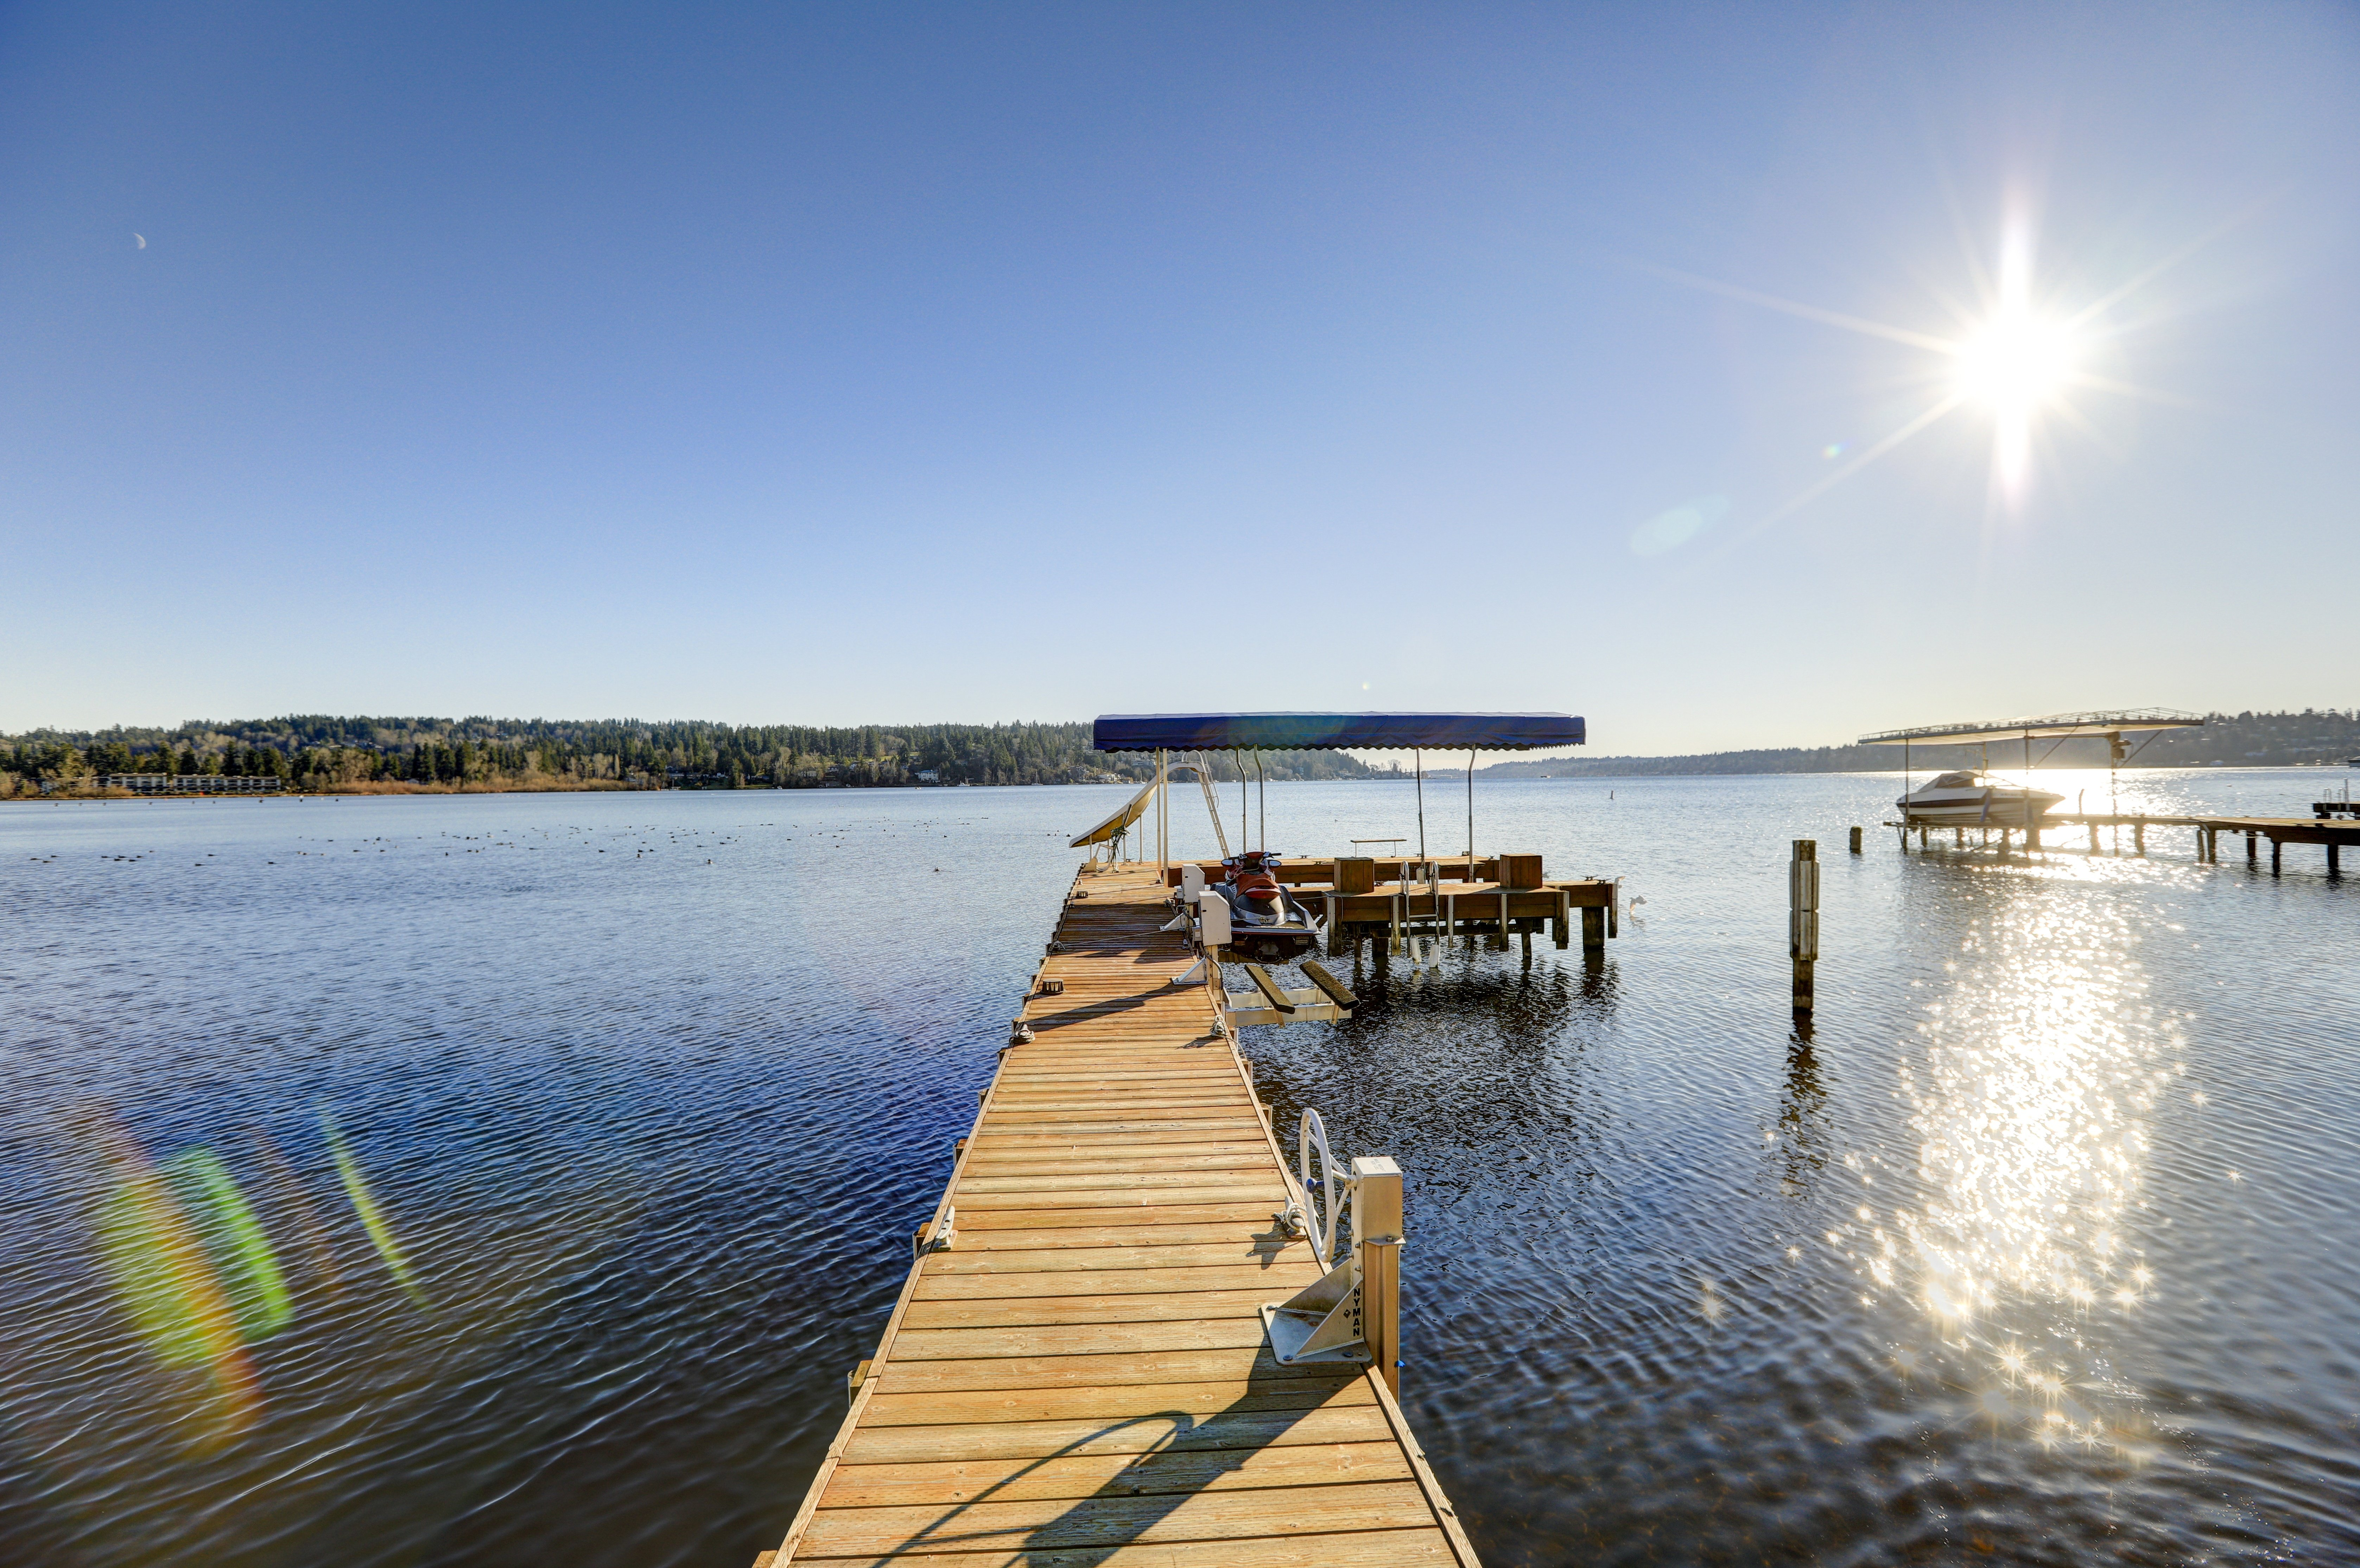 Rebuilding Your Deck or Dock: Things to Consider